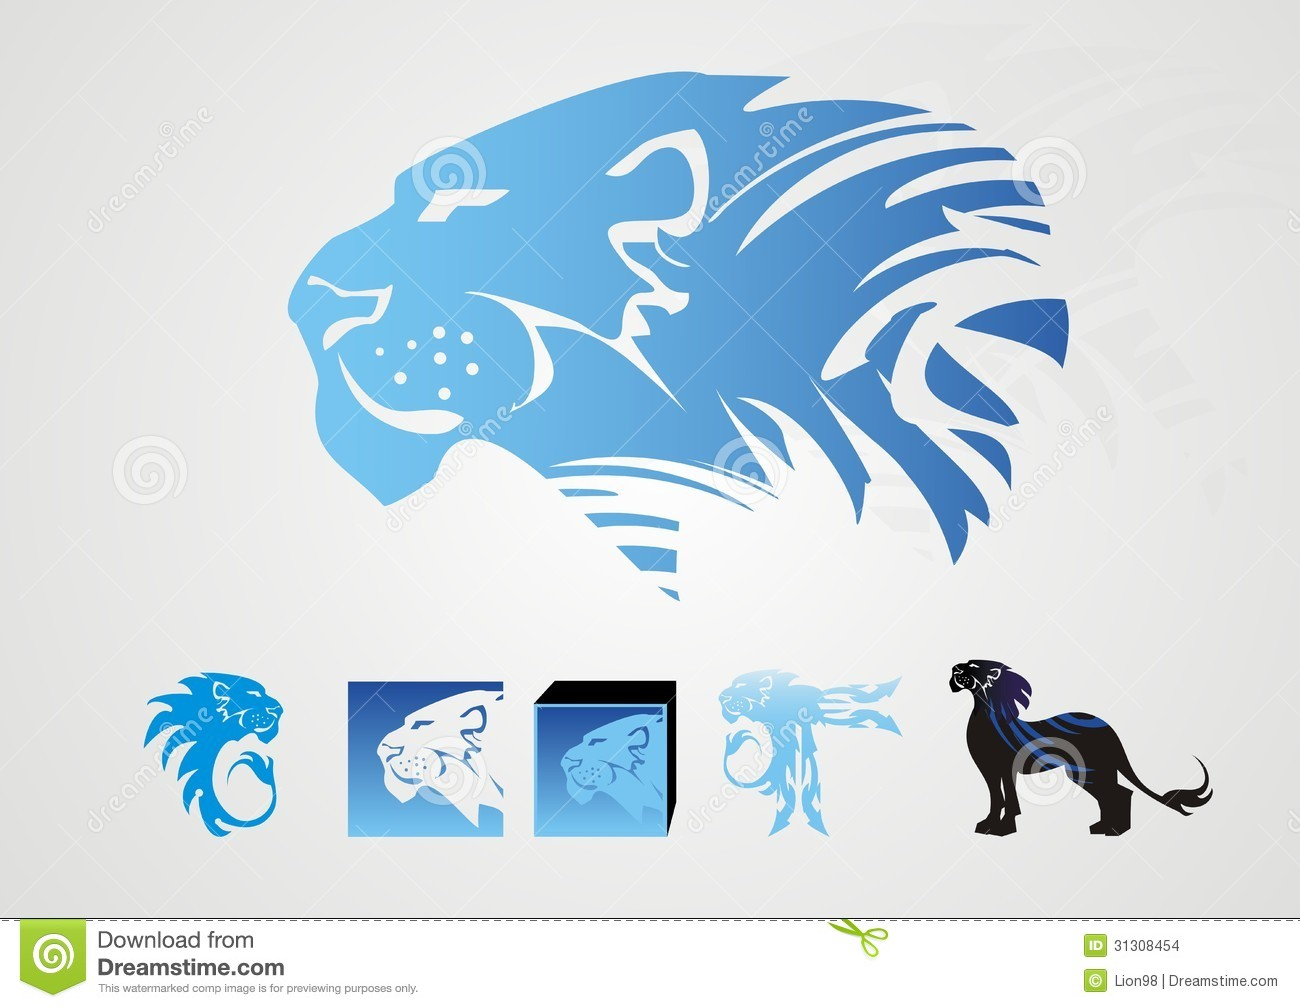 White lion with blue background logo - photo#34